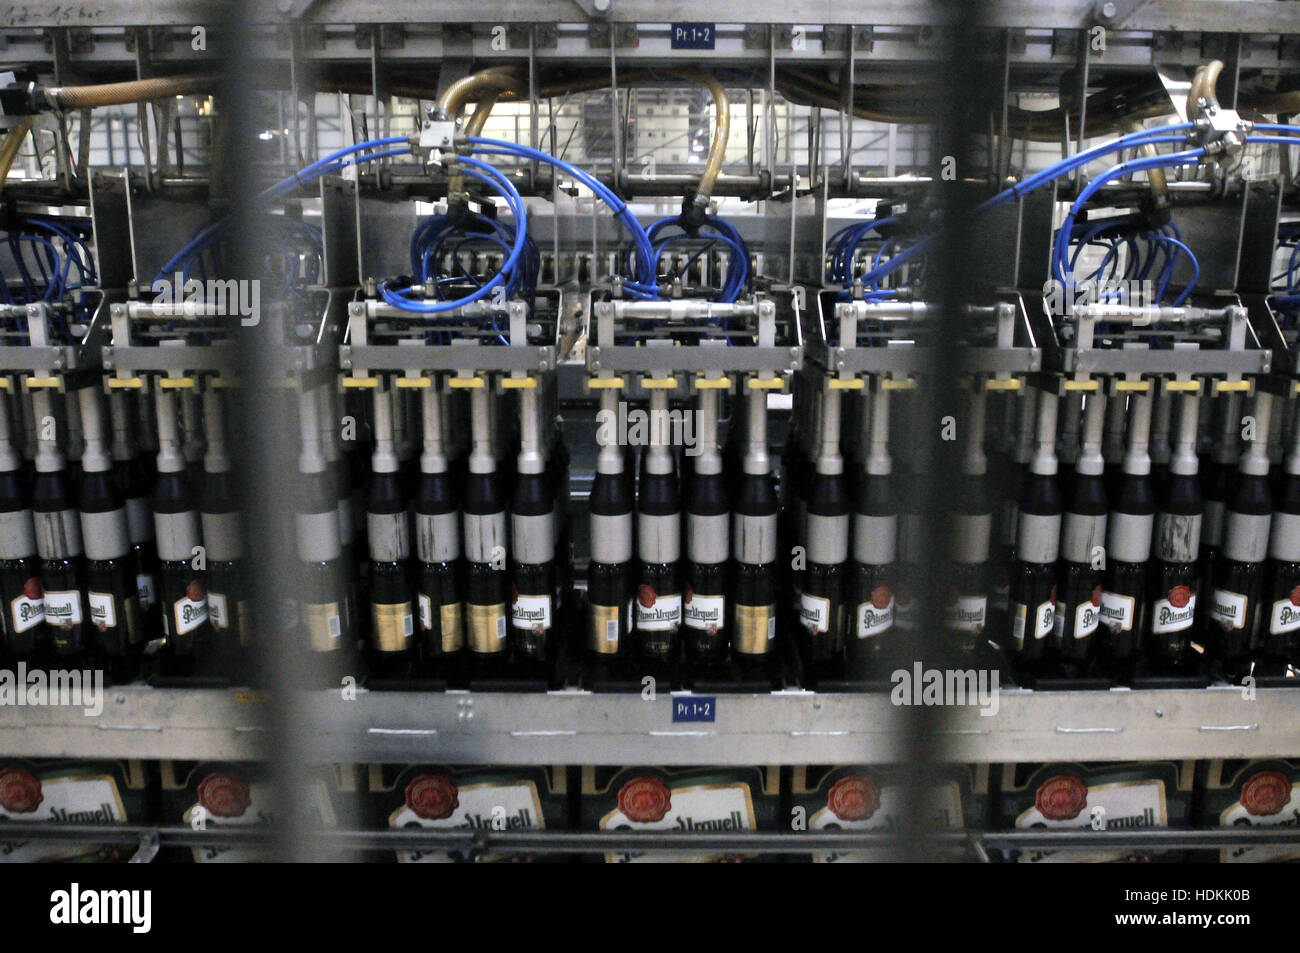 Sabmiller Stock Photos Sabmiller Stock Images Alamy